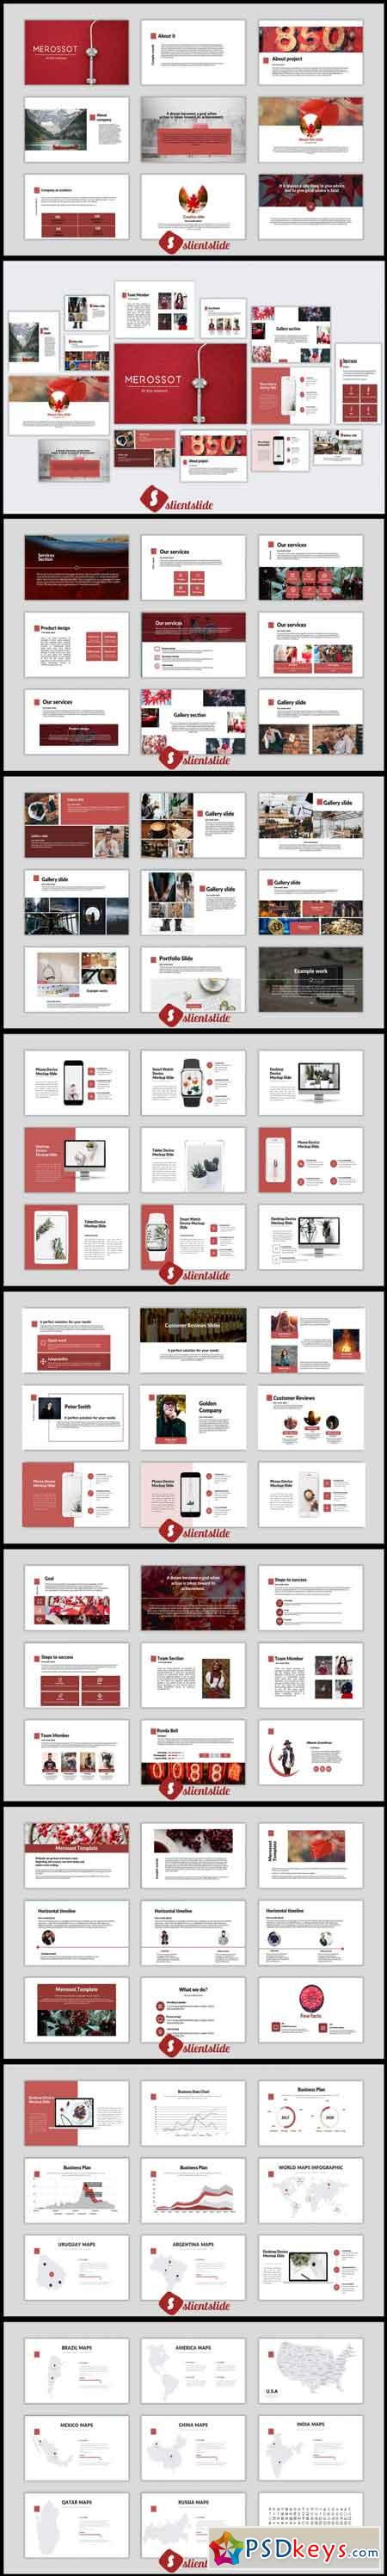 Merossot Powerpoint Template